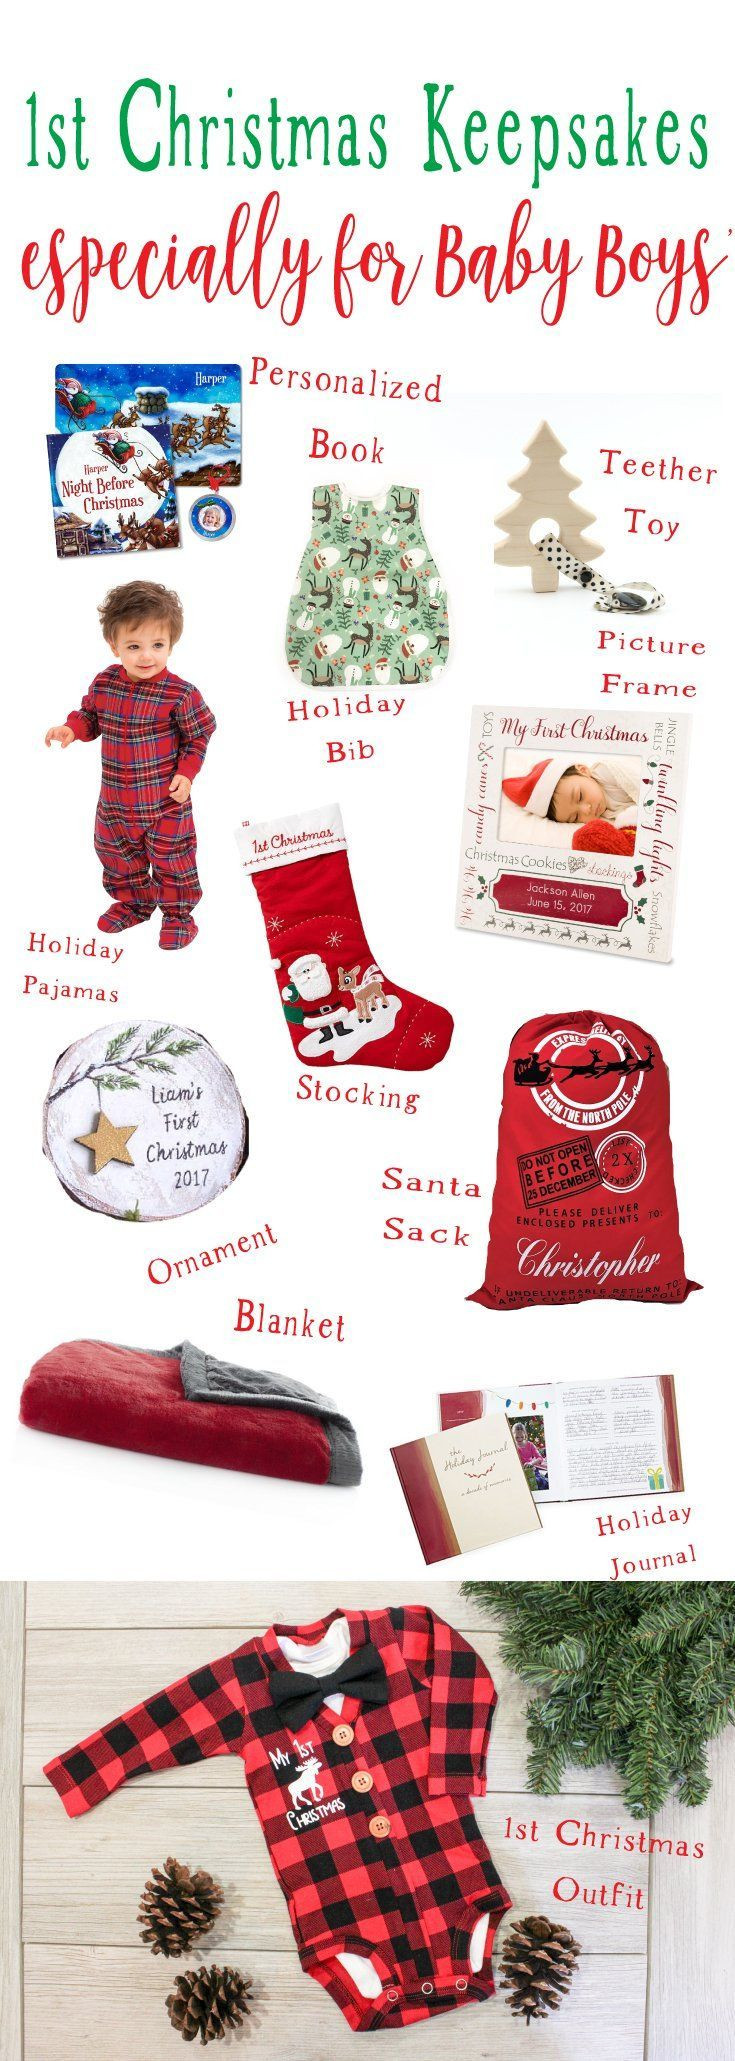 Christmas Gift Ideas From Baby  Baby Boy 1st Christmas Keepsake Ideas